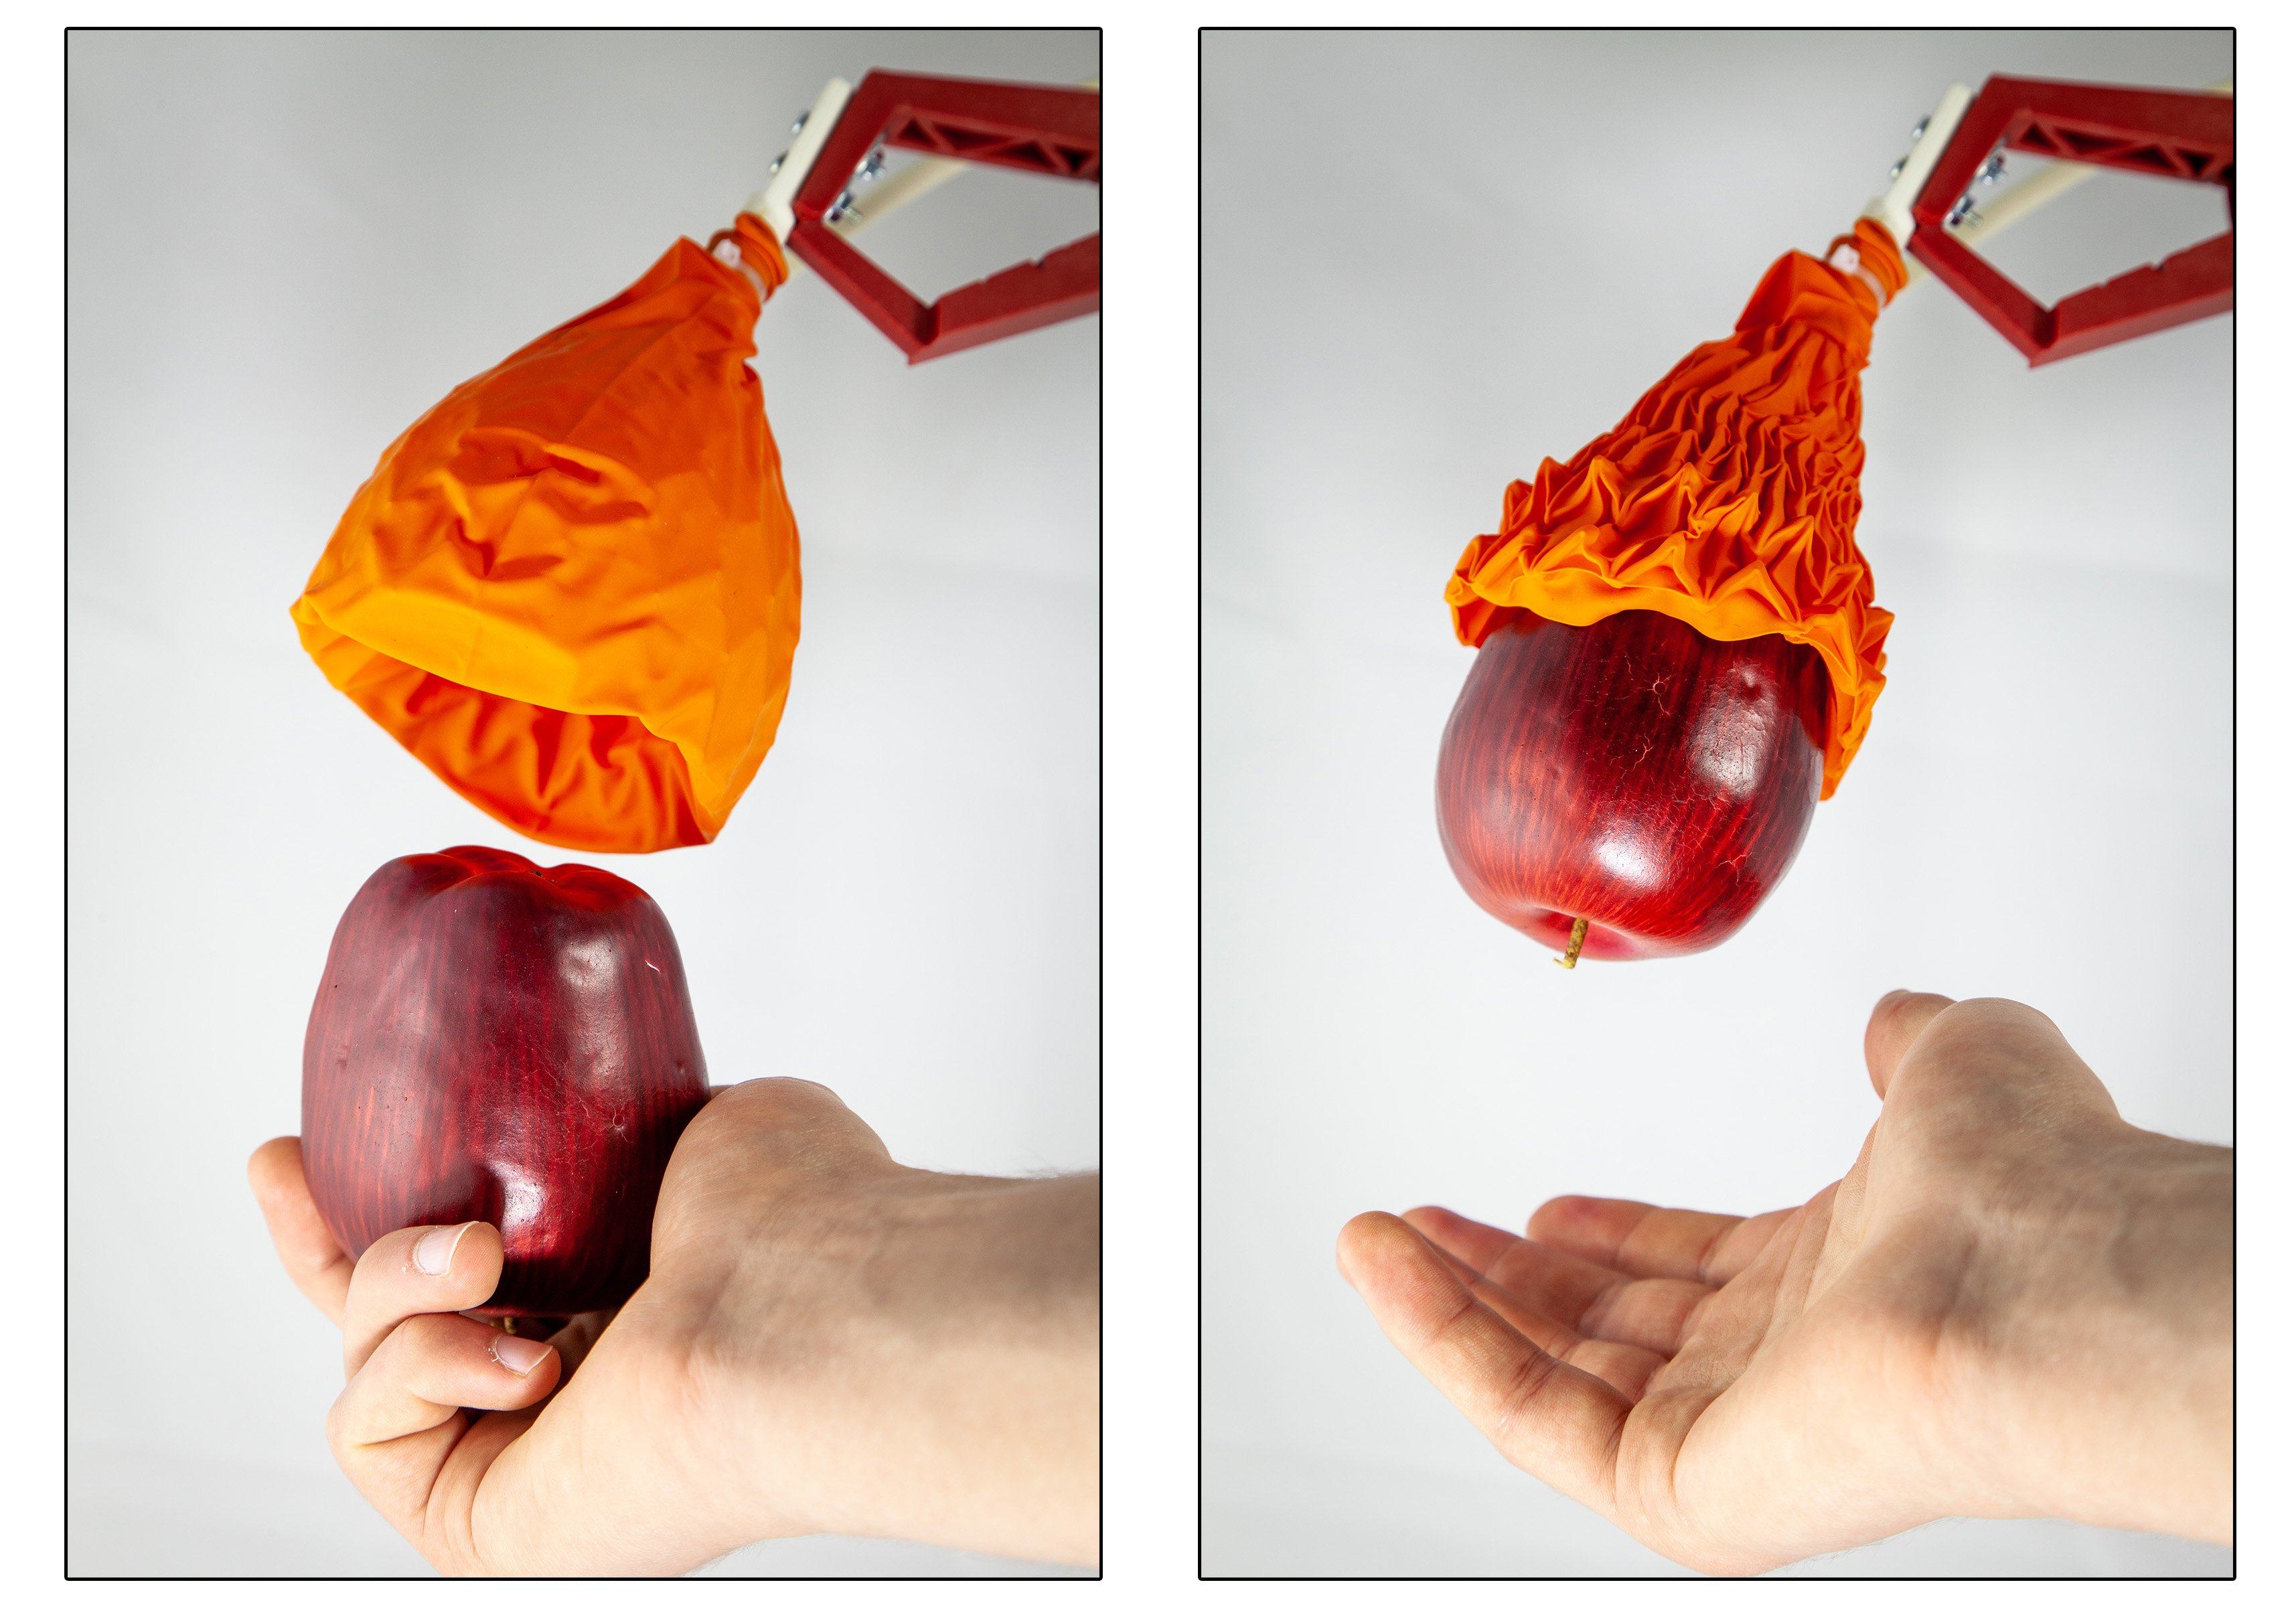 The origami-inspired gripper holds an apple. Image via MIT